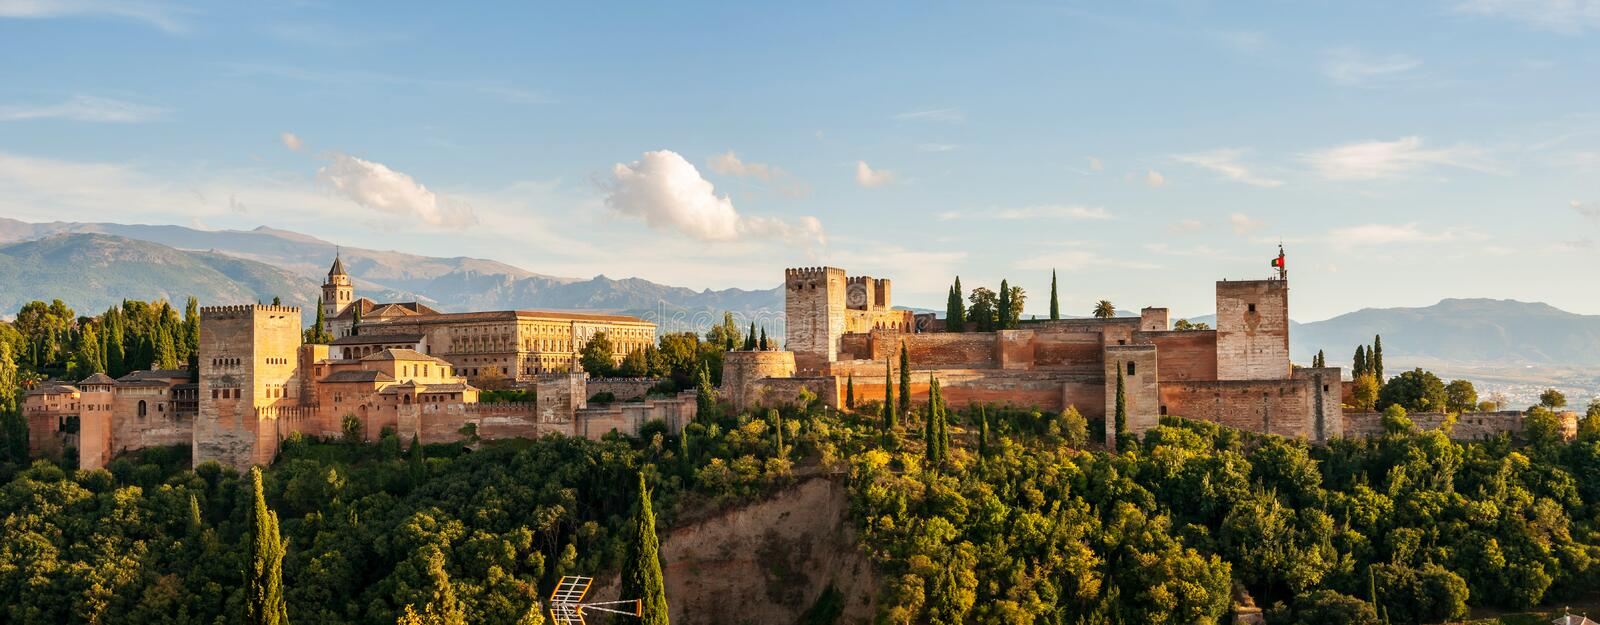 Granada, Spain. Aerial view of Alhambra Palace royalty free stock images